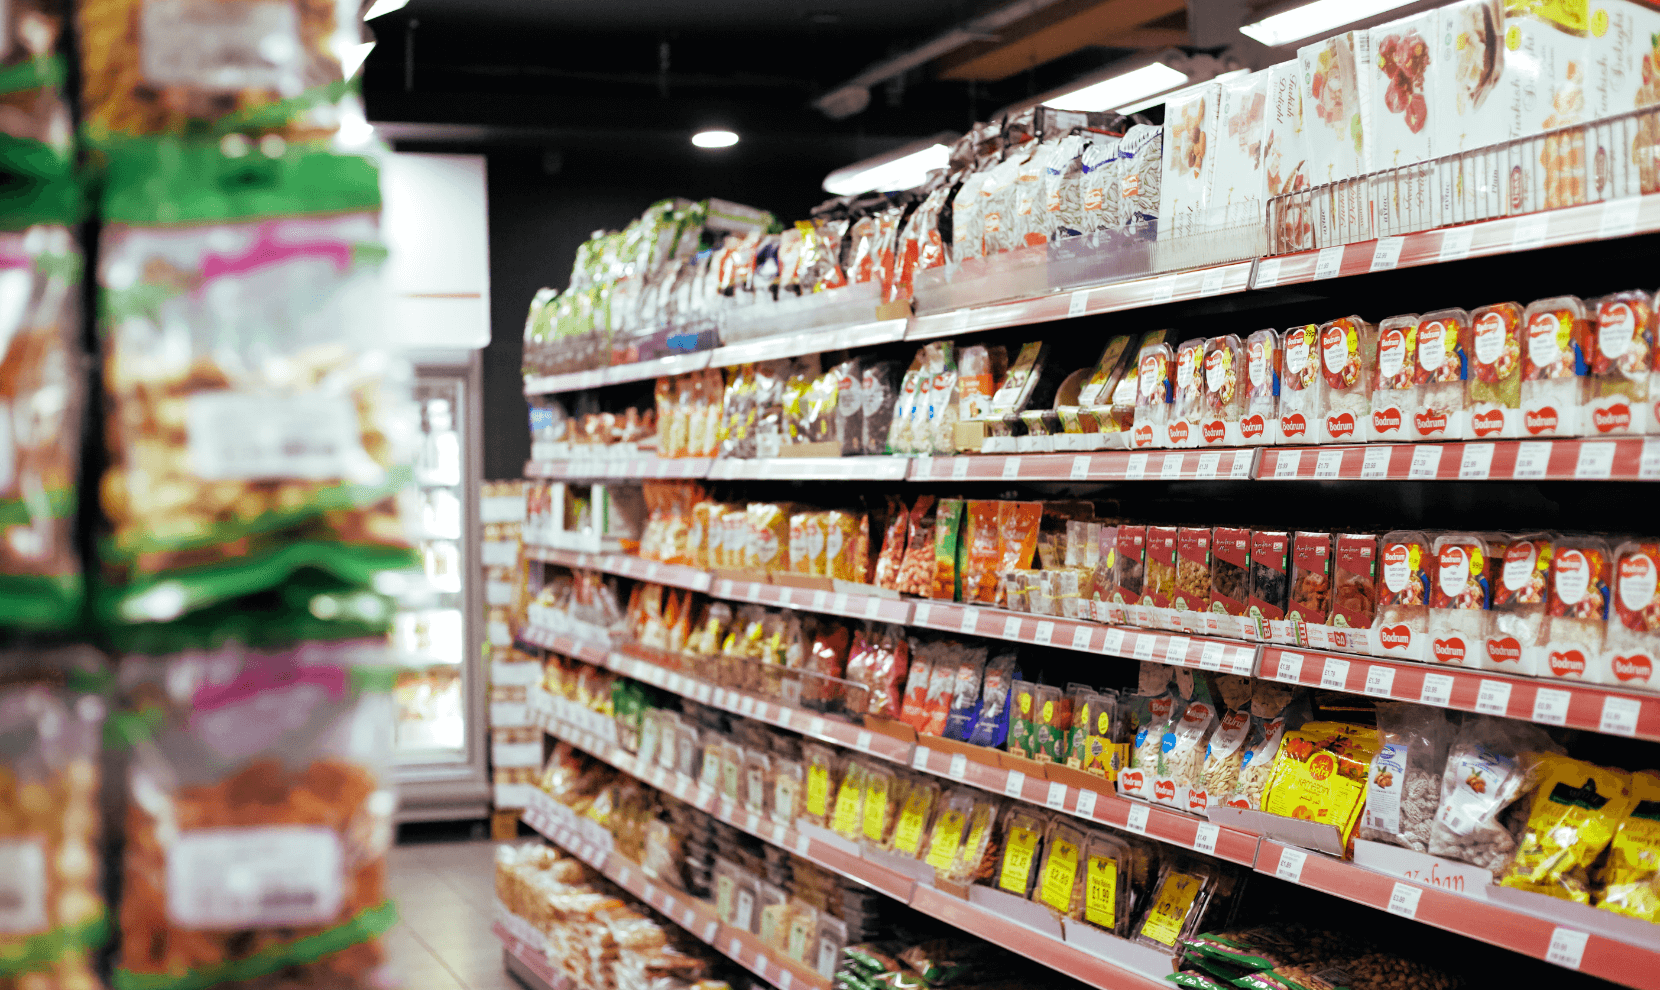 australias-leading-supermarket-woolworths-to-carry-philippine-made-products-in-60-stores